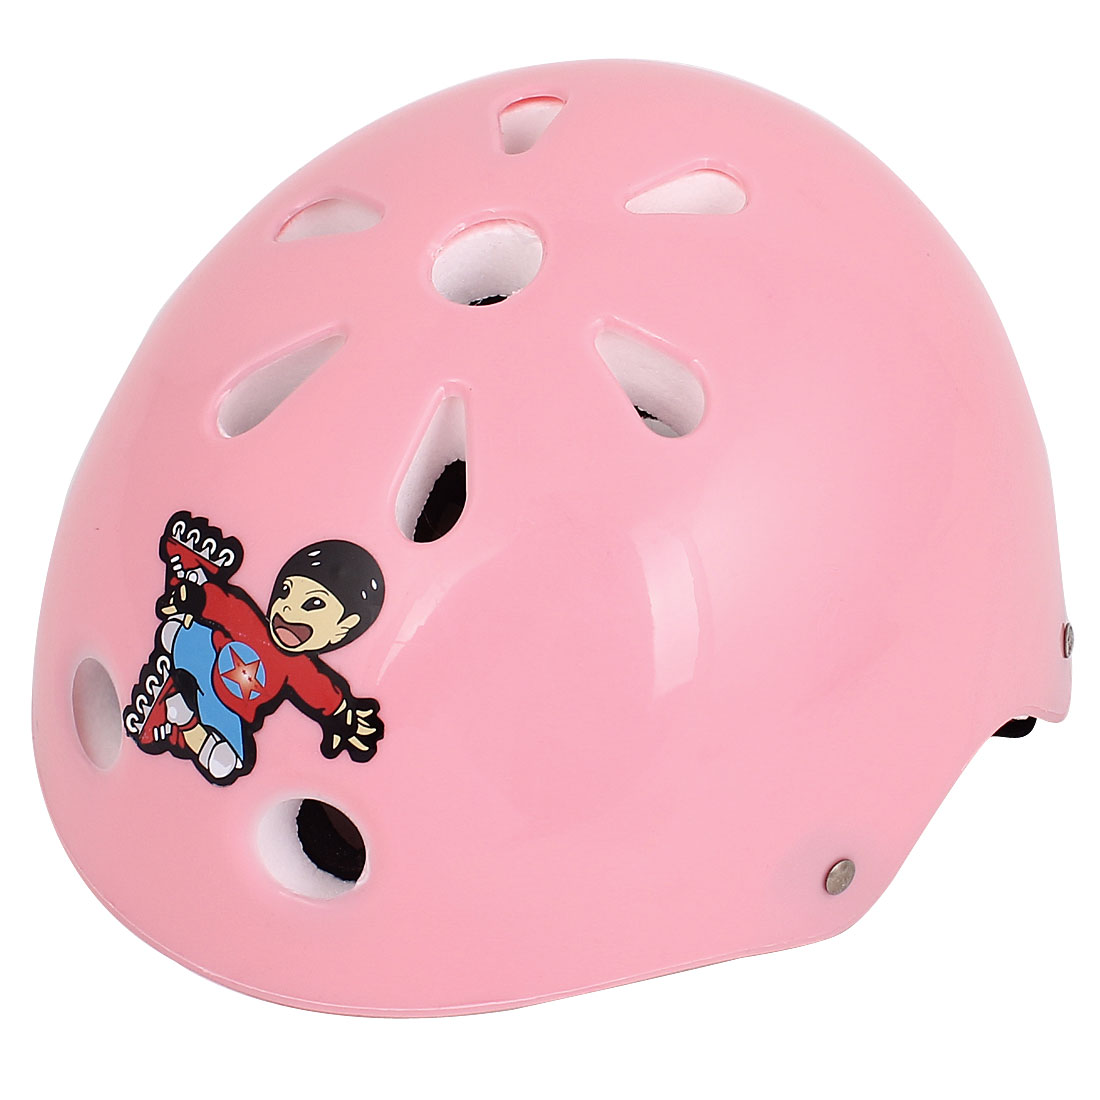 Unique Bargains Kids Skateboard Skiing Racing Bicycle Bike Sports Helmet Pink White by